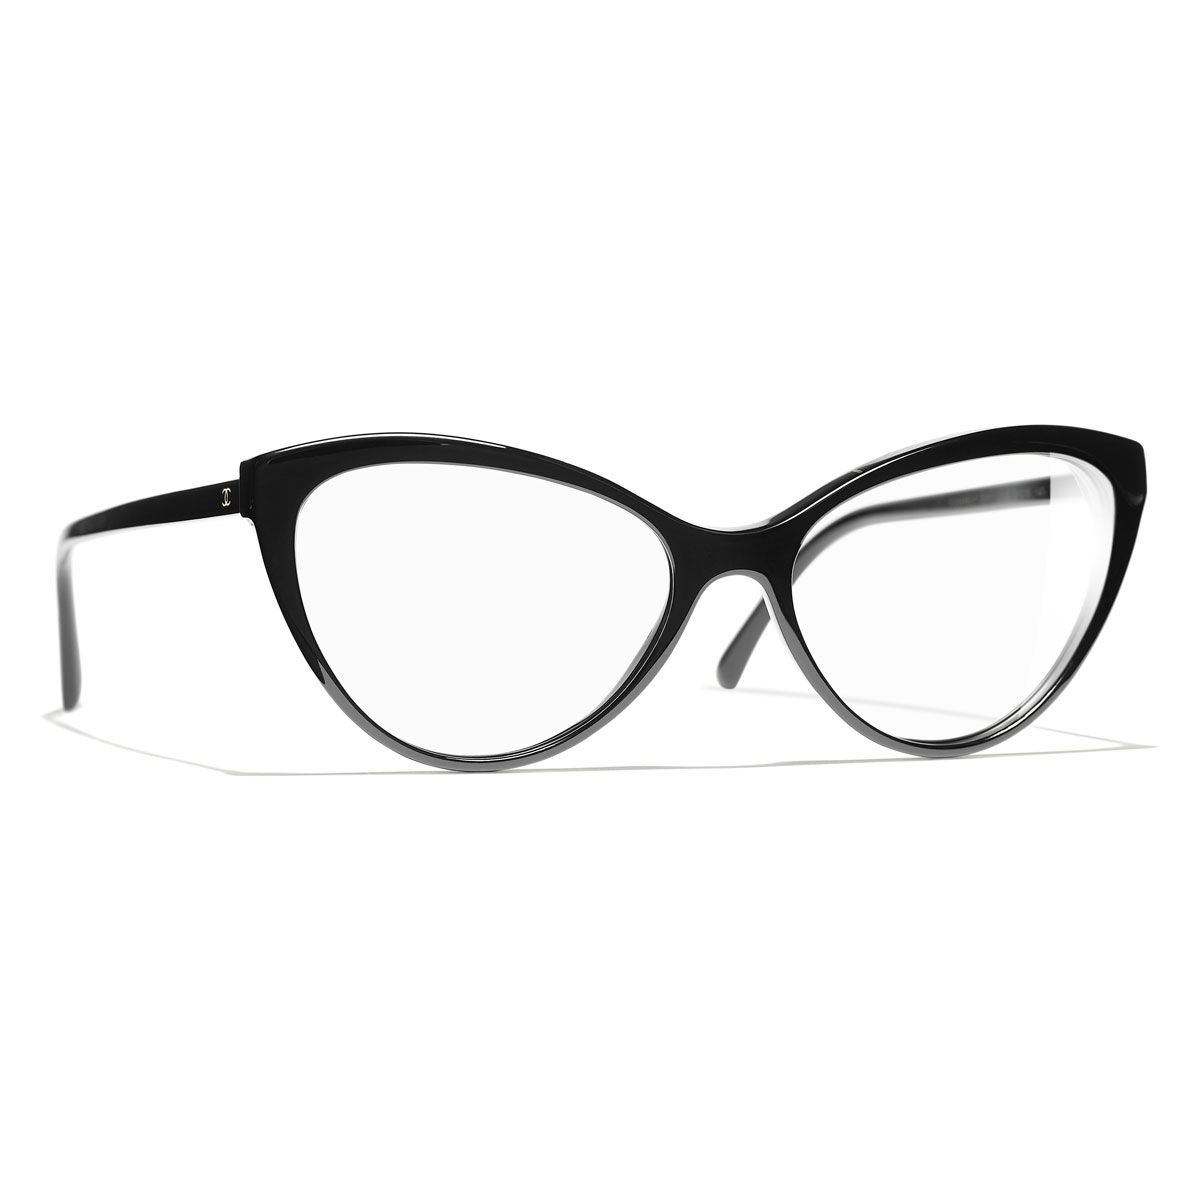 Cat Eye Eyeglasses 225 Gafas Graduadas